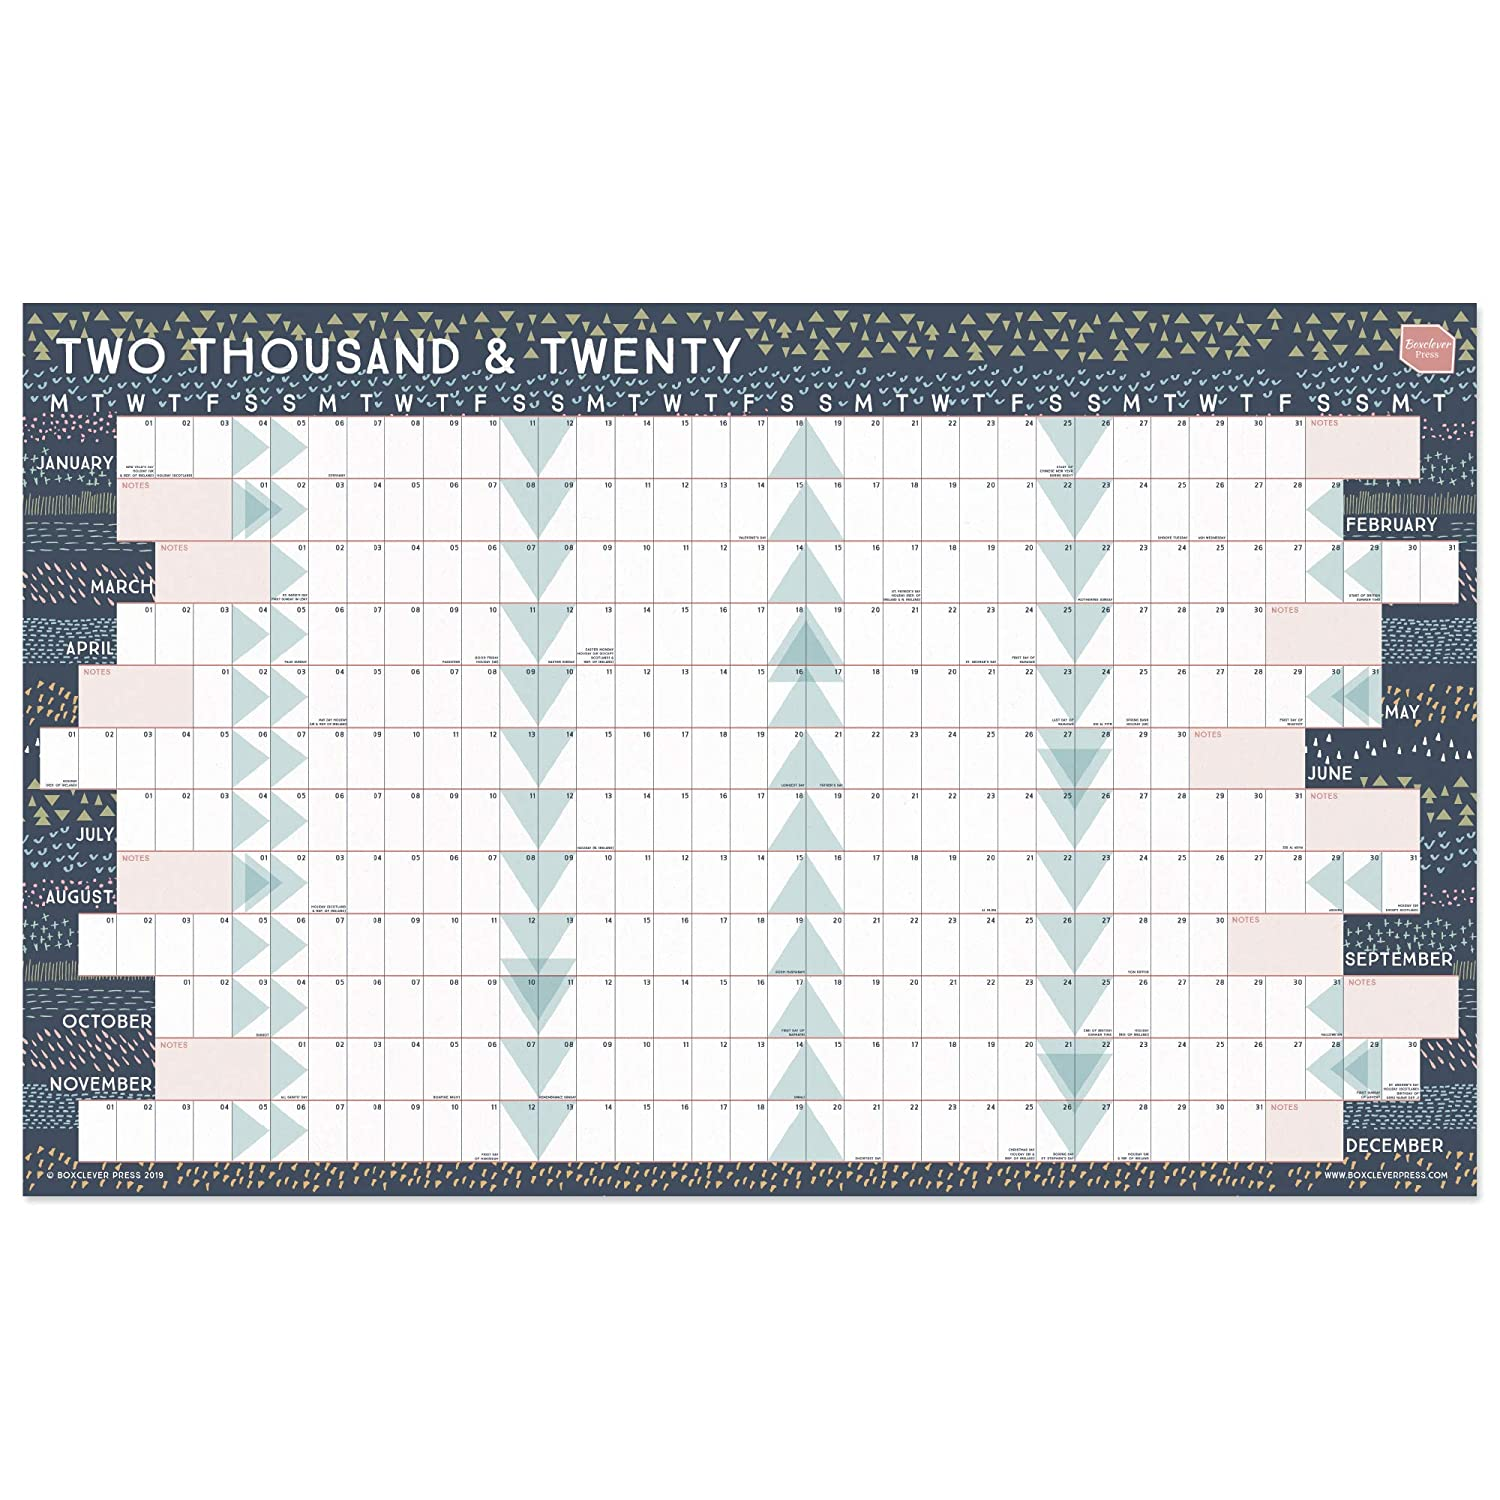 Ideal Home 2020.Boxclever Press 2020 Wall Planner Year Planner With Linear Format Ideal Home Or Office Wall Calendar Wall Planner 2020 Large Format Runs Jan